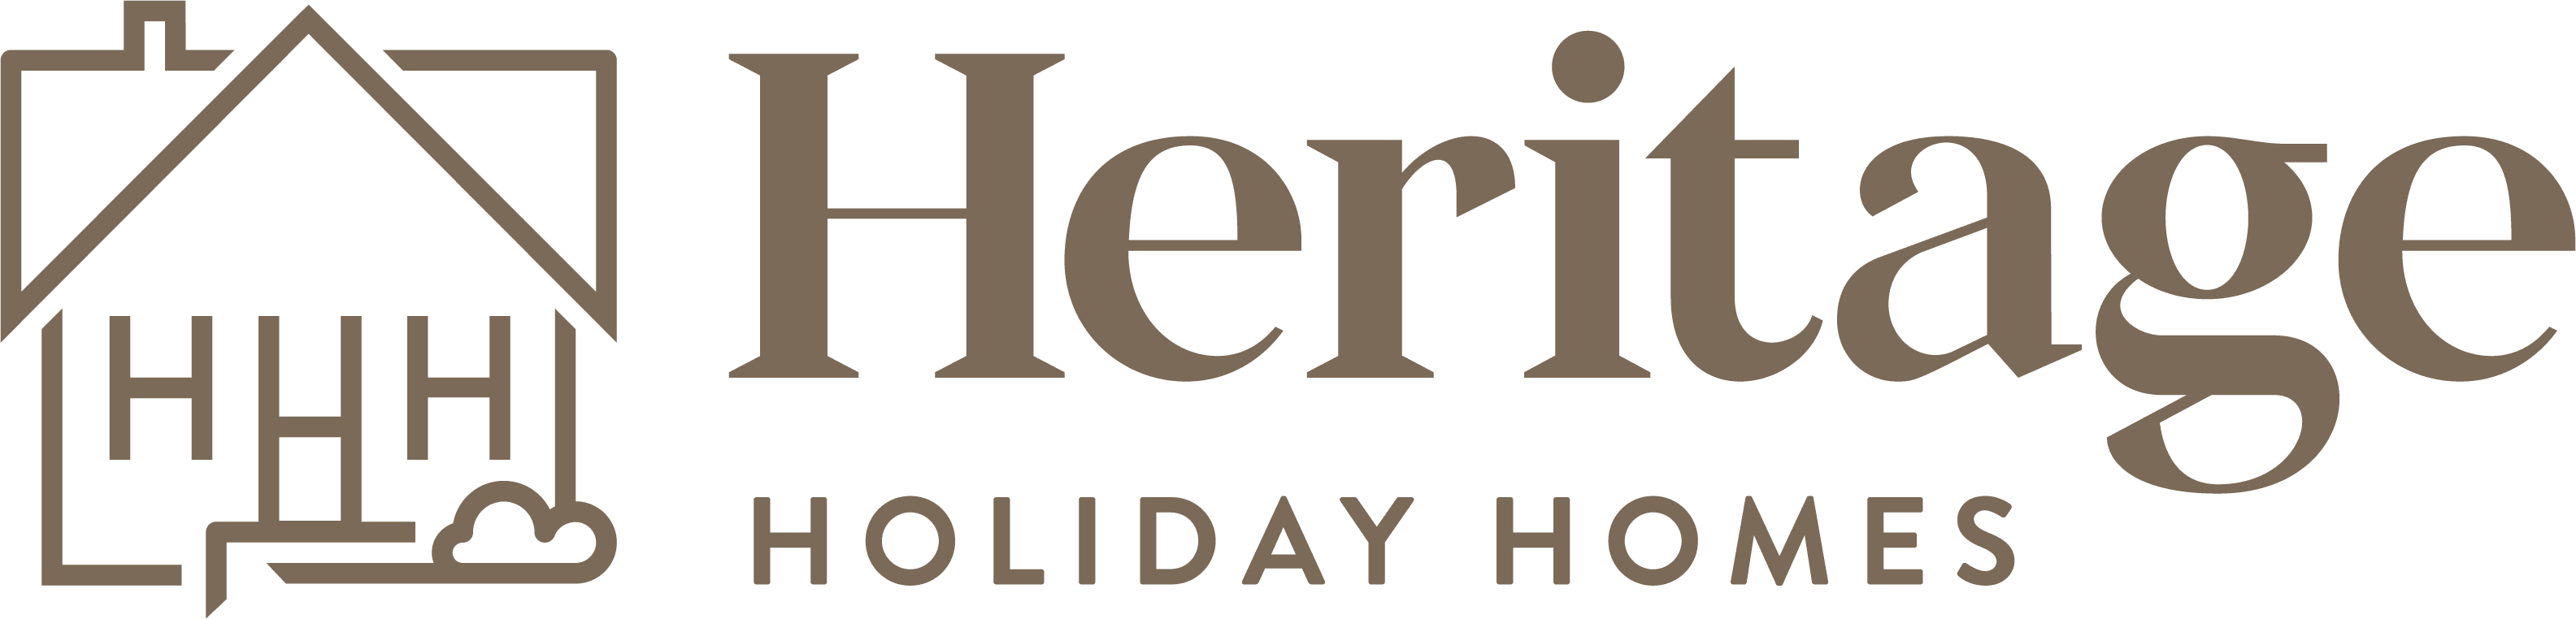 Heritage Holiday Homes Logo